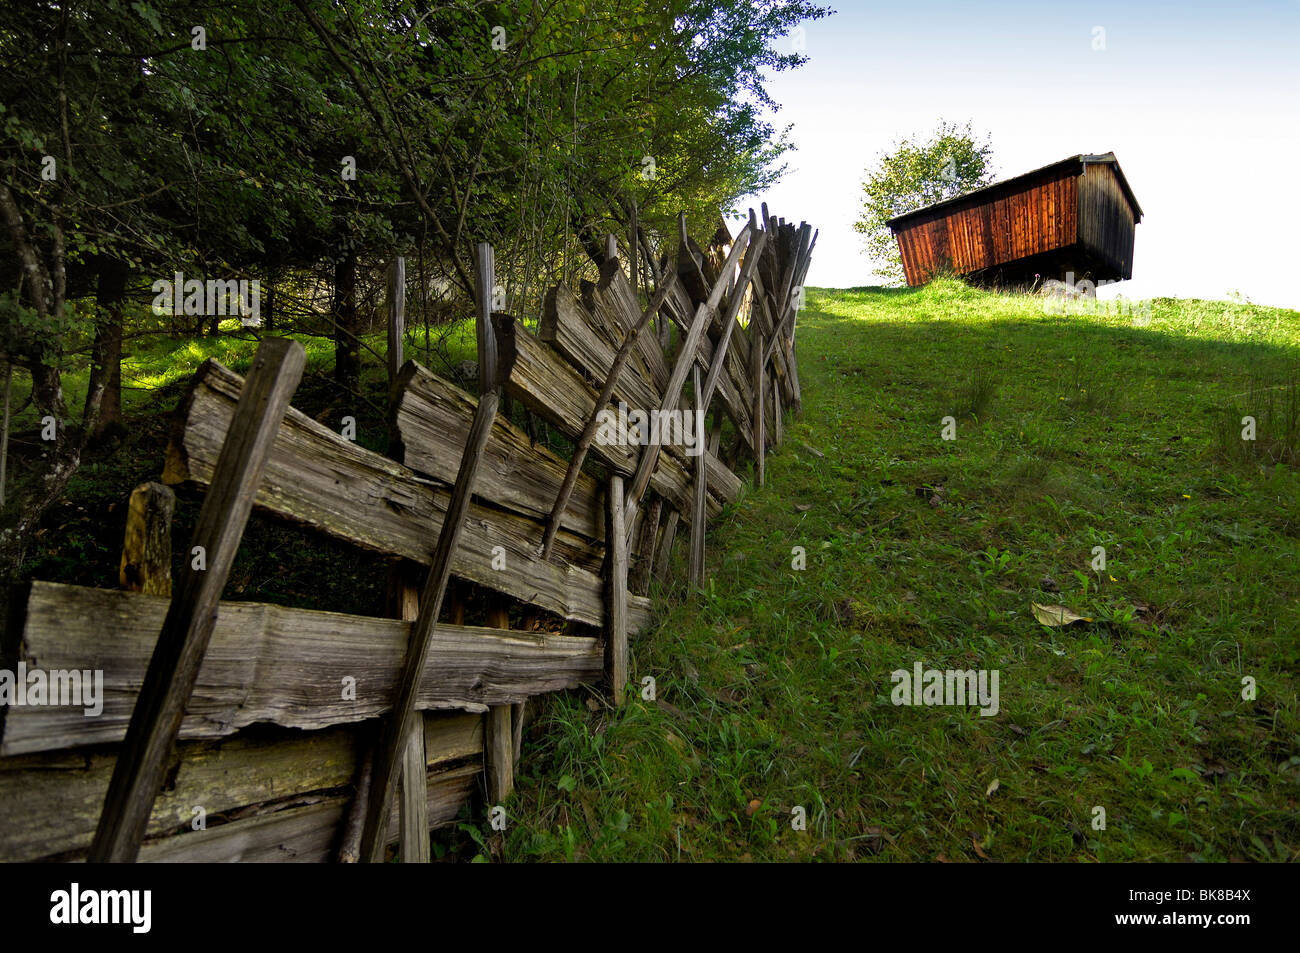 Wooden fence, granary from Ramsau, Glentleiten open-air museum, Bavaria, Germany, Europe - Stock Image